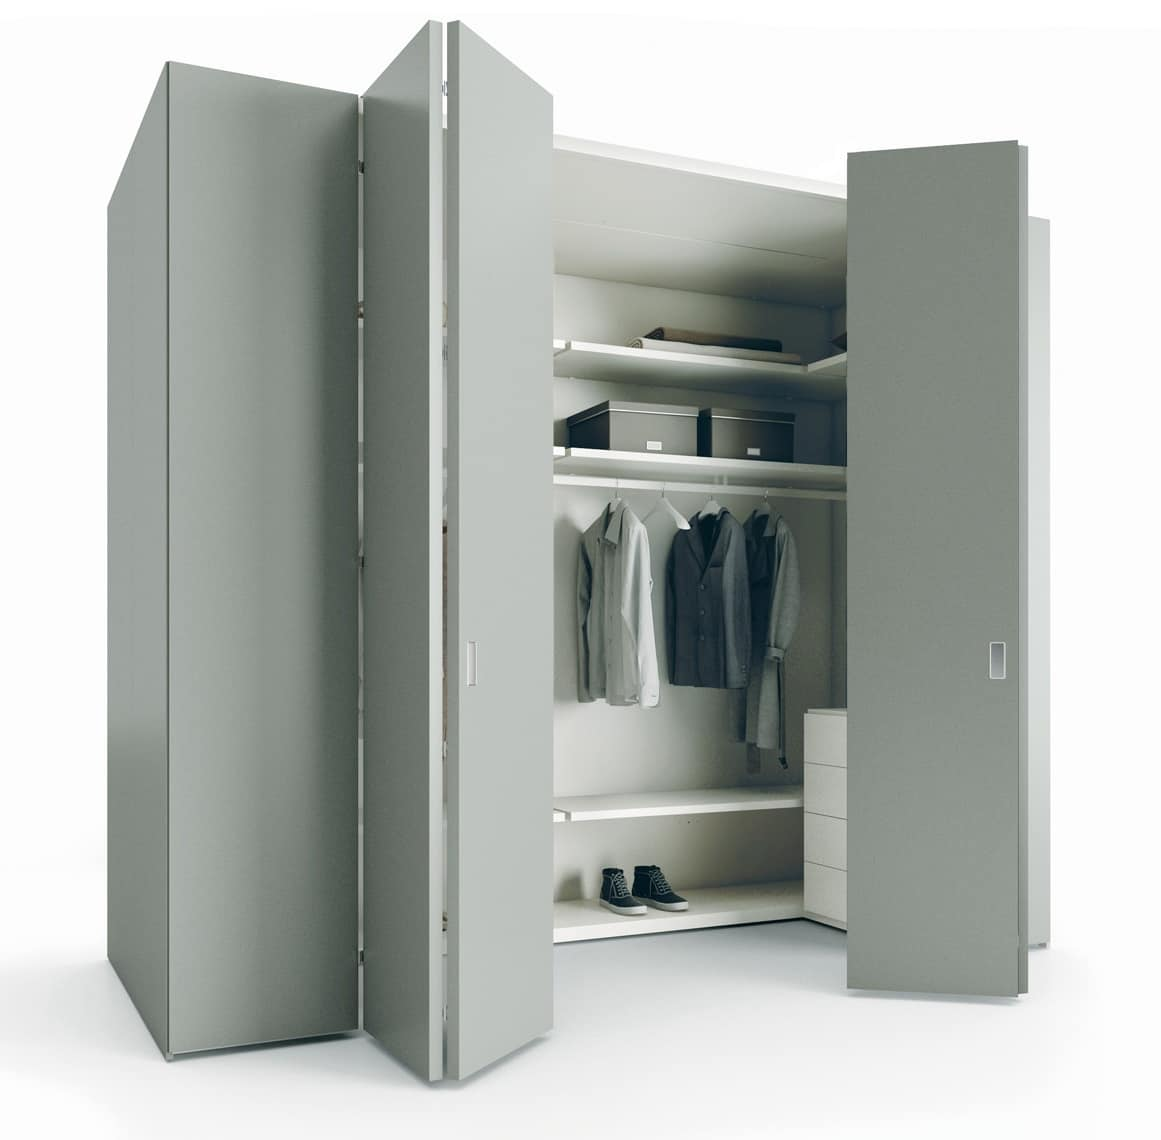 Walk-in Closet Self-supporting, With Essential Design